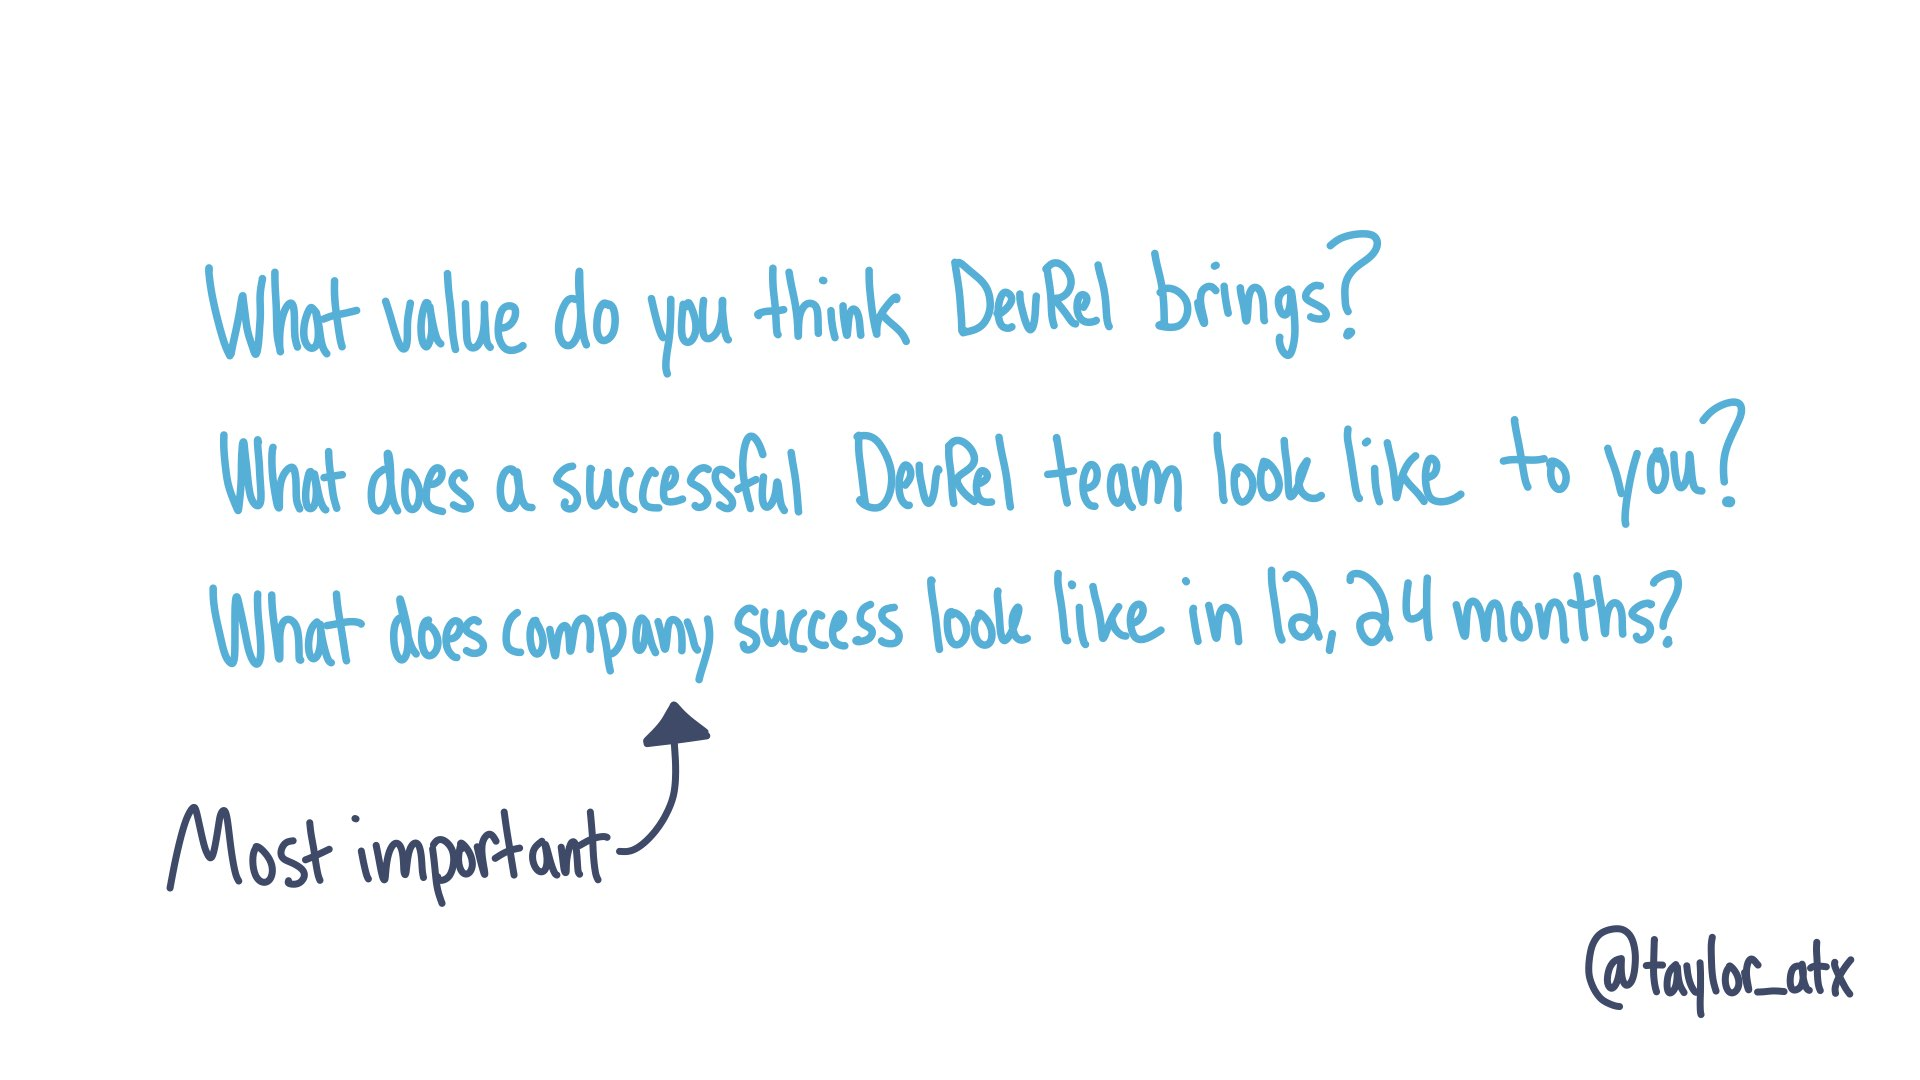 What value do you think DevRel brings? What does a succuesful DevReal team look like to you? What does company success look like in 12, 24 months? (Most important)